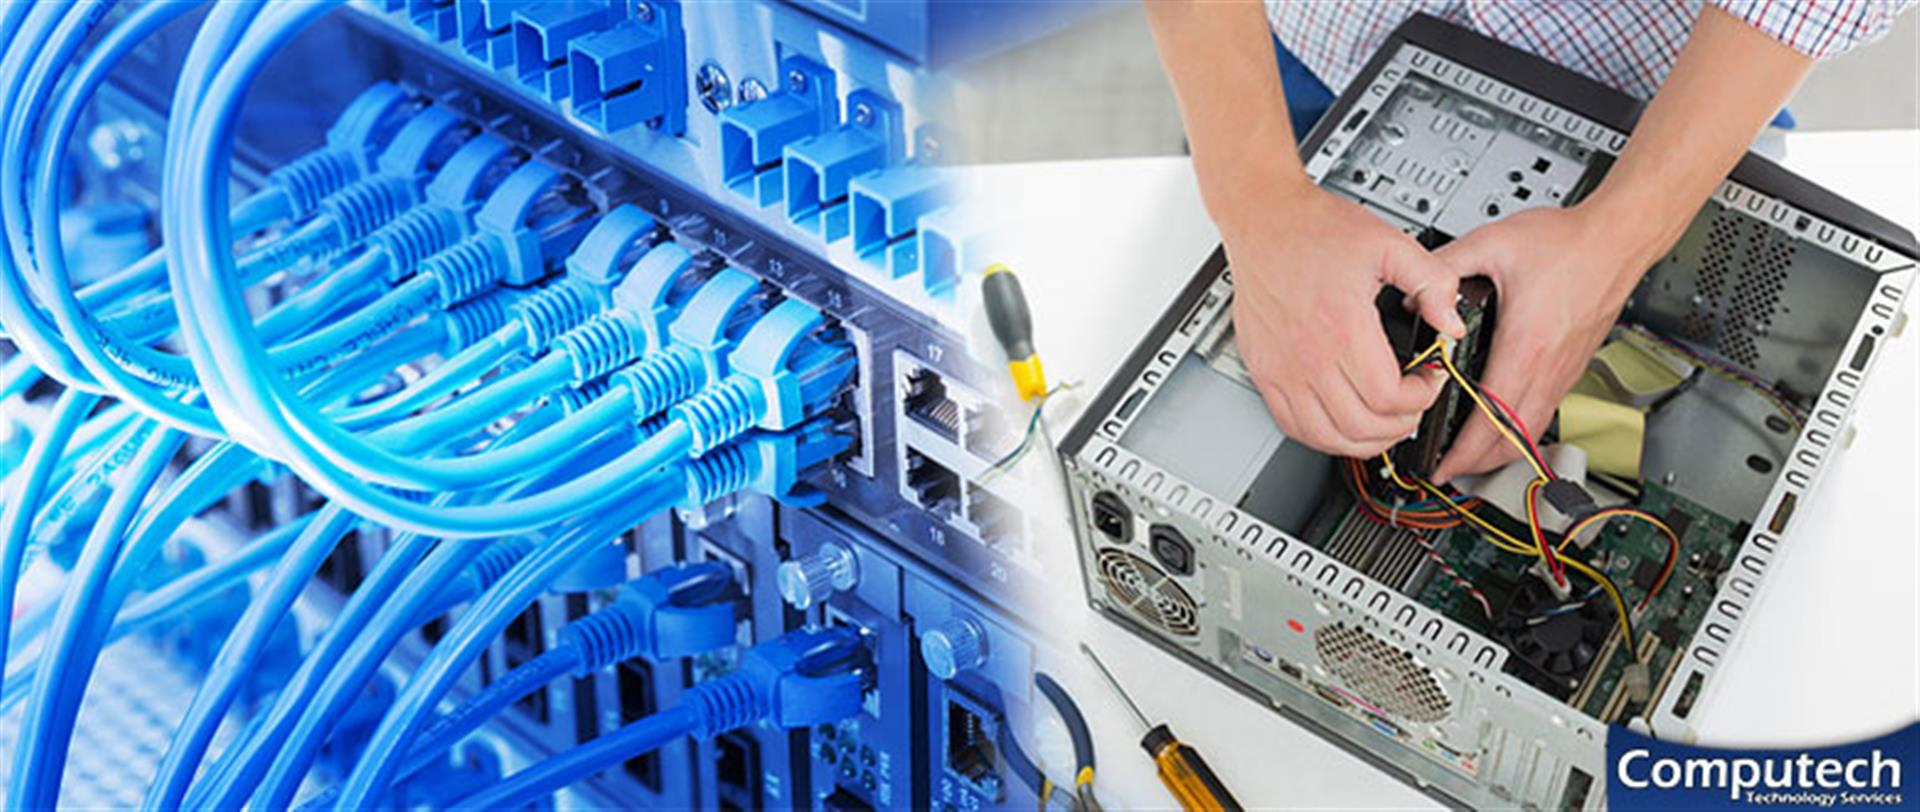 Mount Carmel Tennessee On-Site PC & Printer Repair, Networks, Voice & Data Cabling Solutions